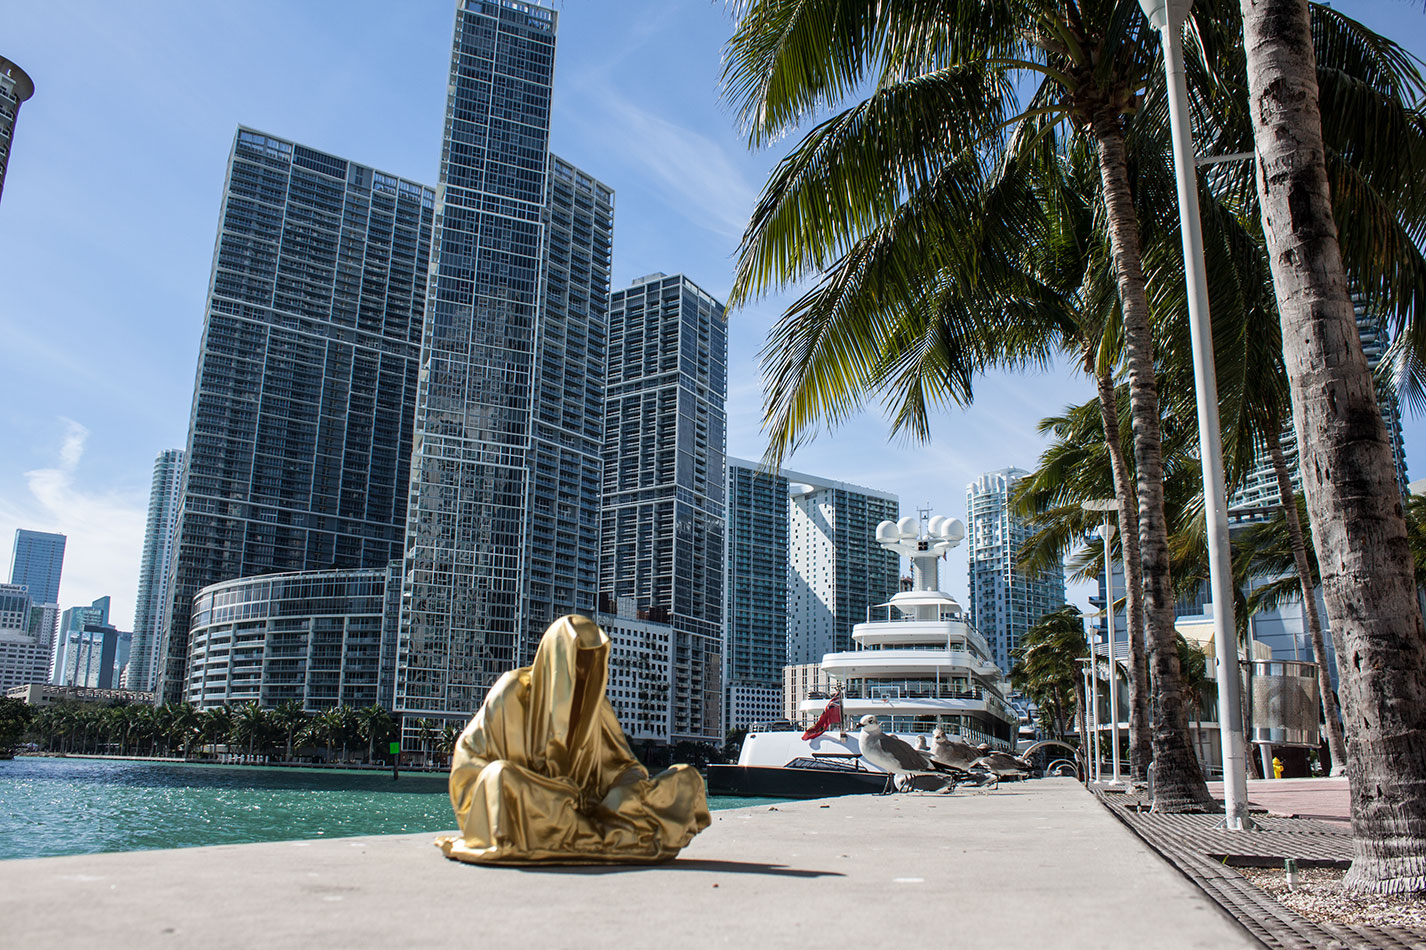 public-art-basel-miami-beach-fair-usa-florida-guardians-of-time-manfred-kili-kielnhofer-contemporary-fine-art-modern-arts-design-antiques-sculpture-6720